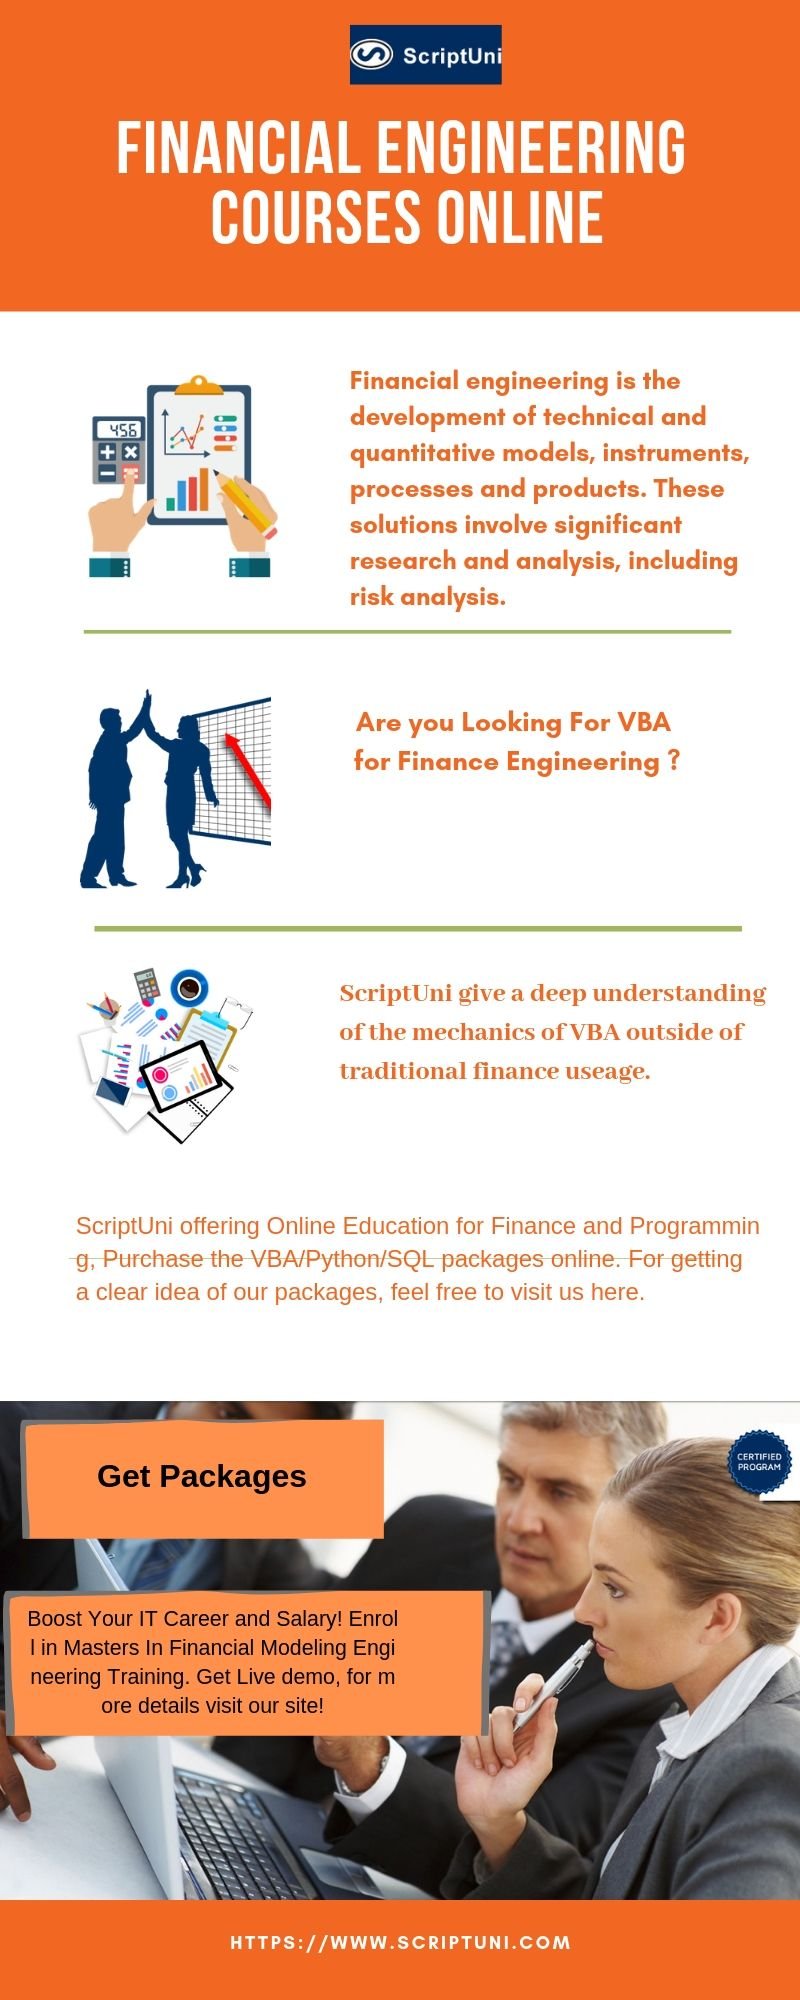 ScriptUni offering Online #Education for #Finance and #Programming